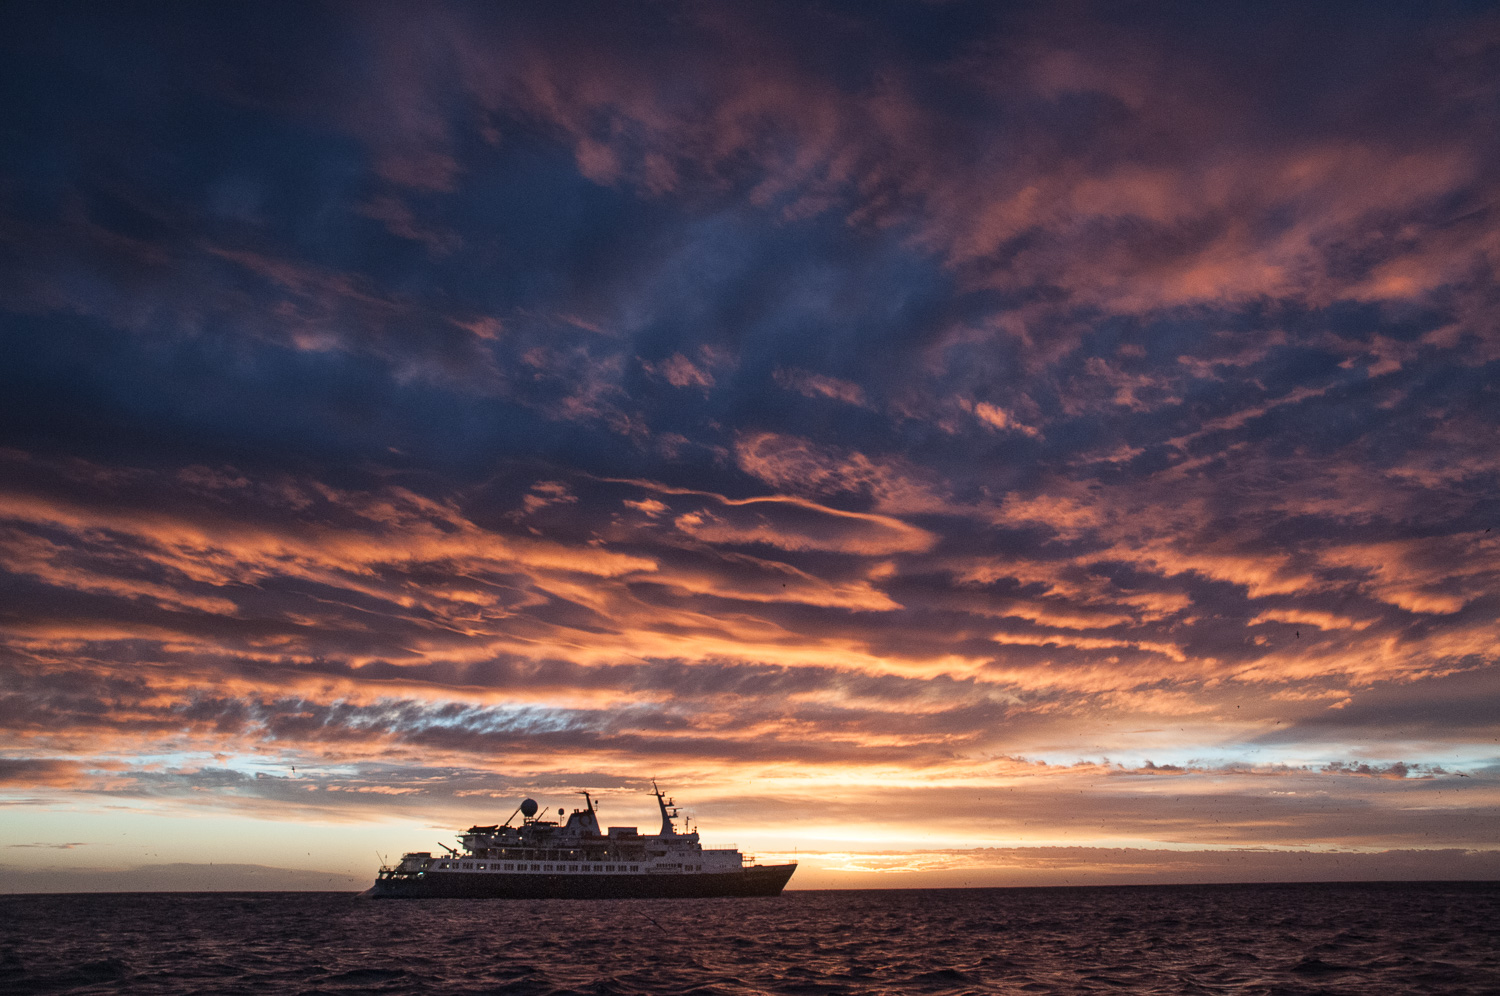 Oranges and pinks and purples illuminate the clouds over the new and improved Ocean Adventurer and the horizon beyond.  Photo credit Phil Wickens